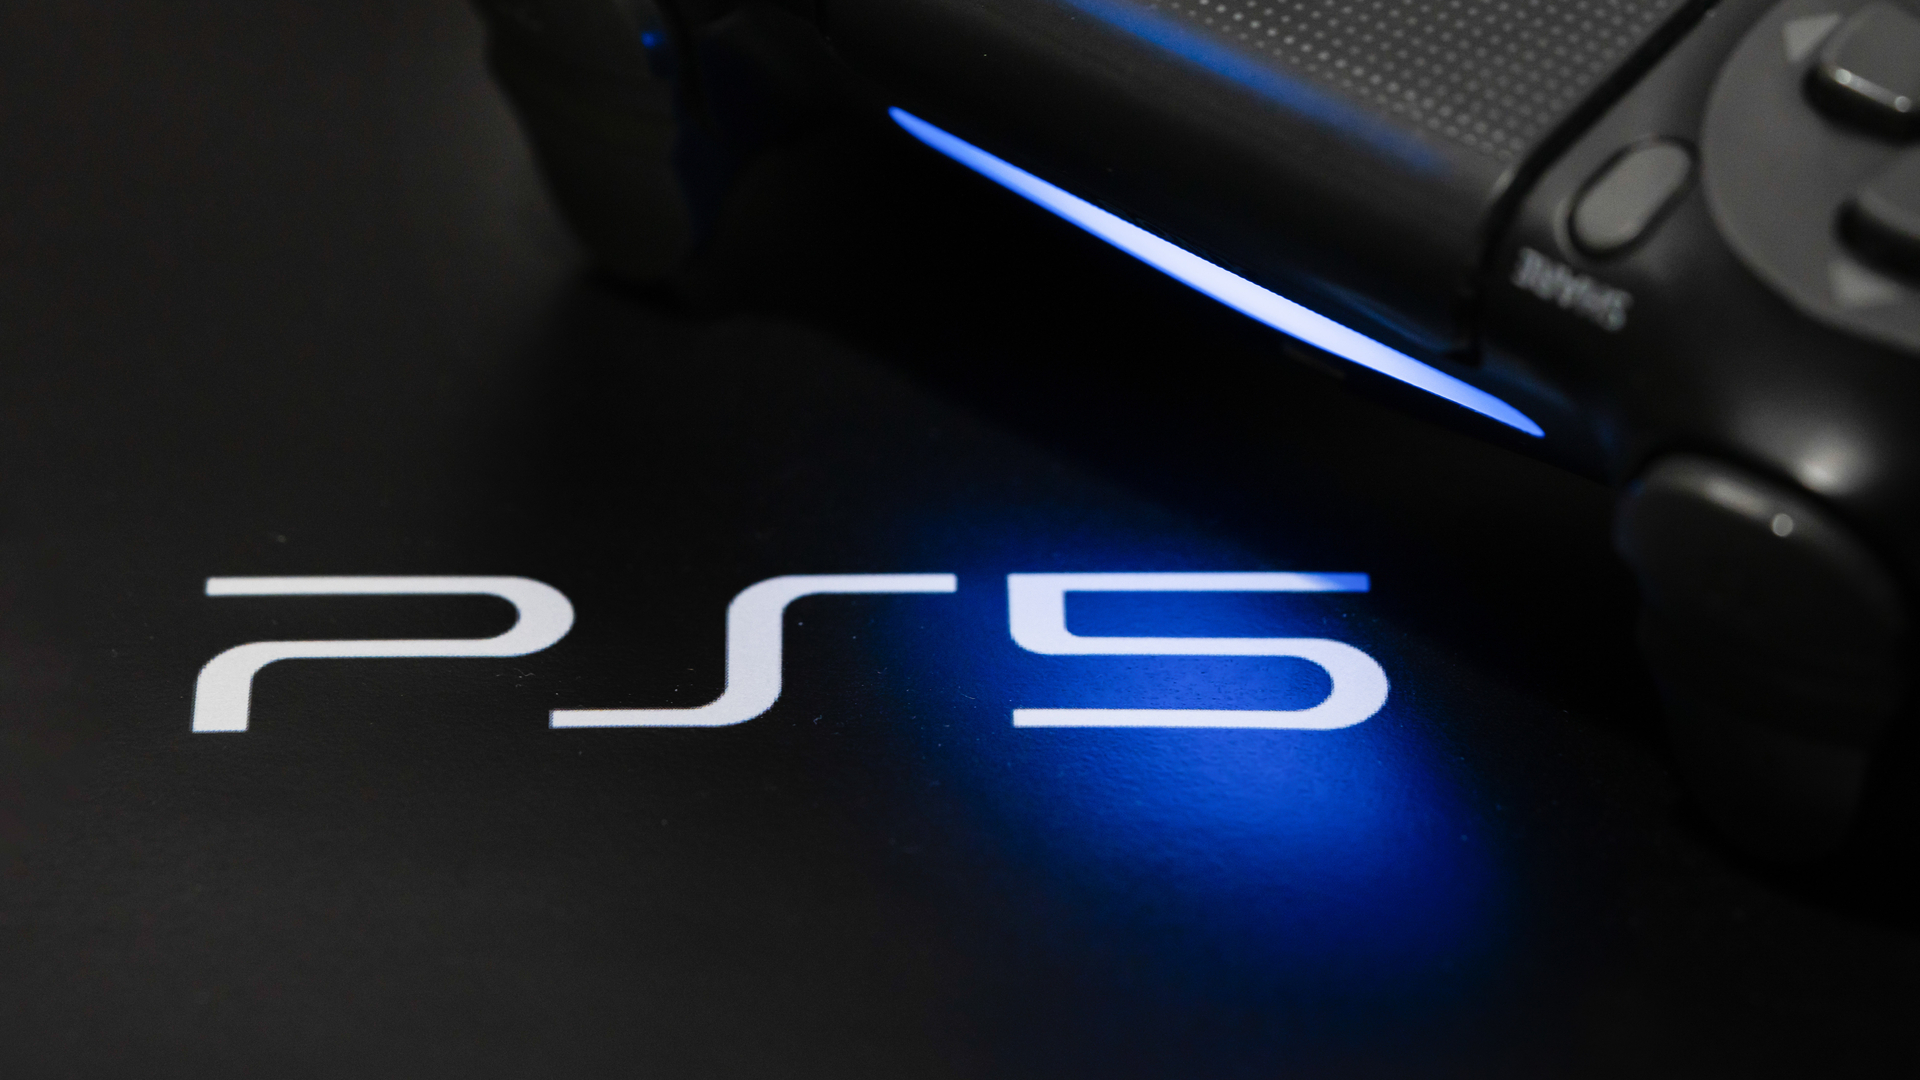 Latest PS5 price leaks are wild – and can't be trusted